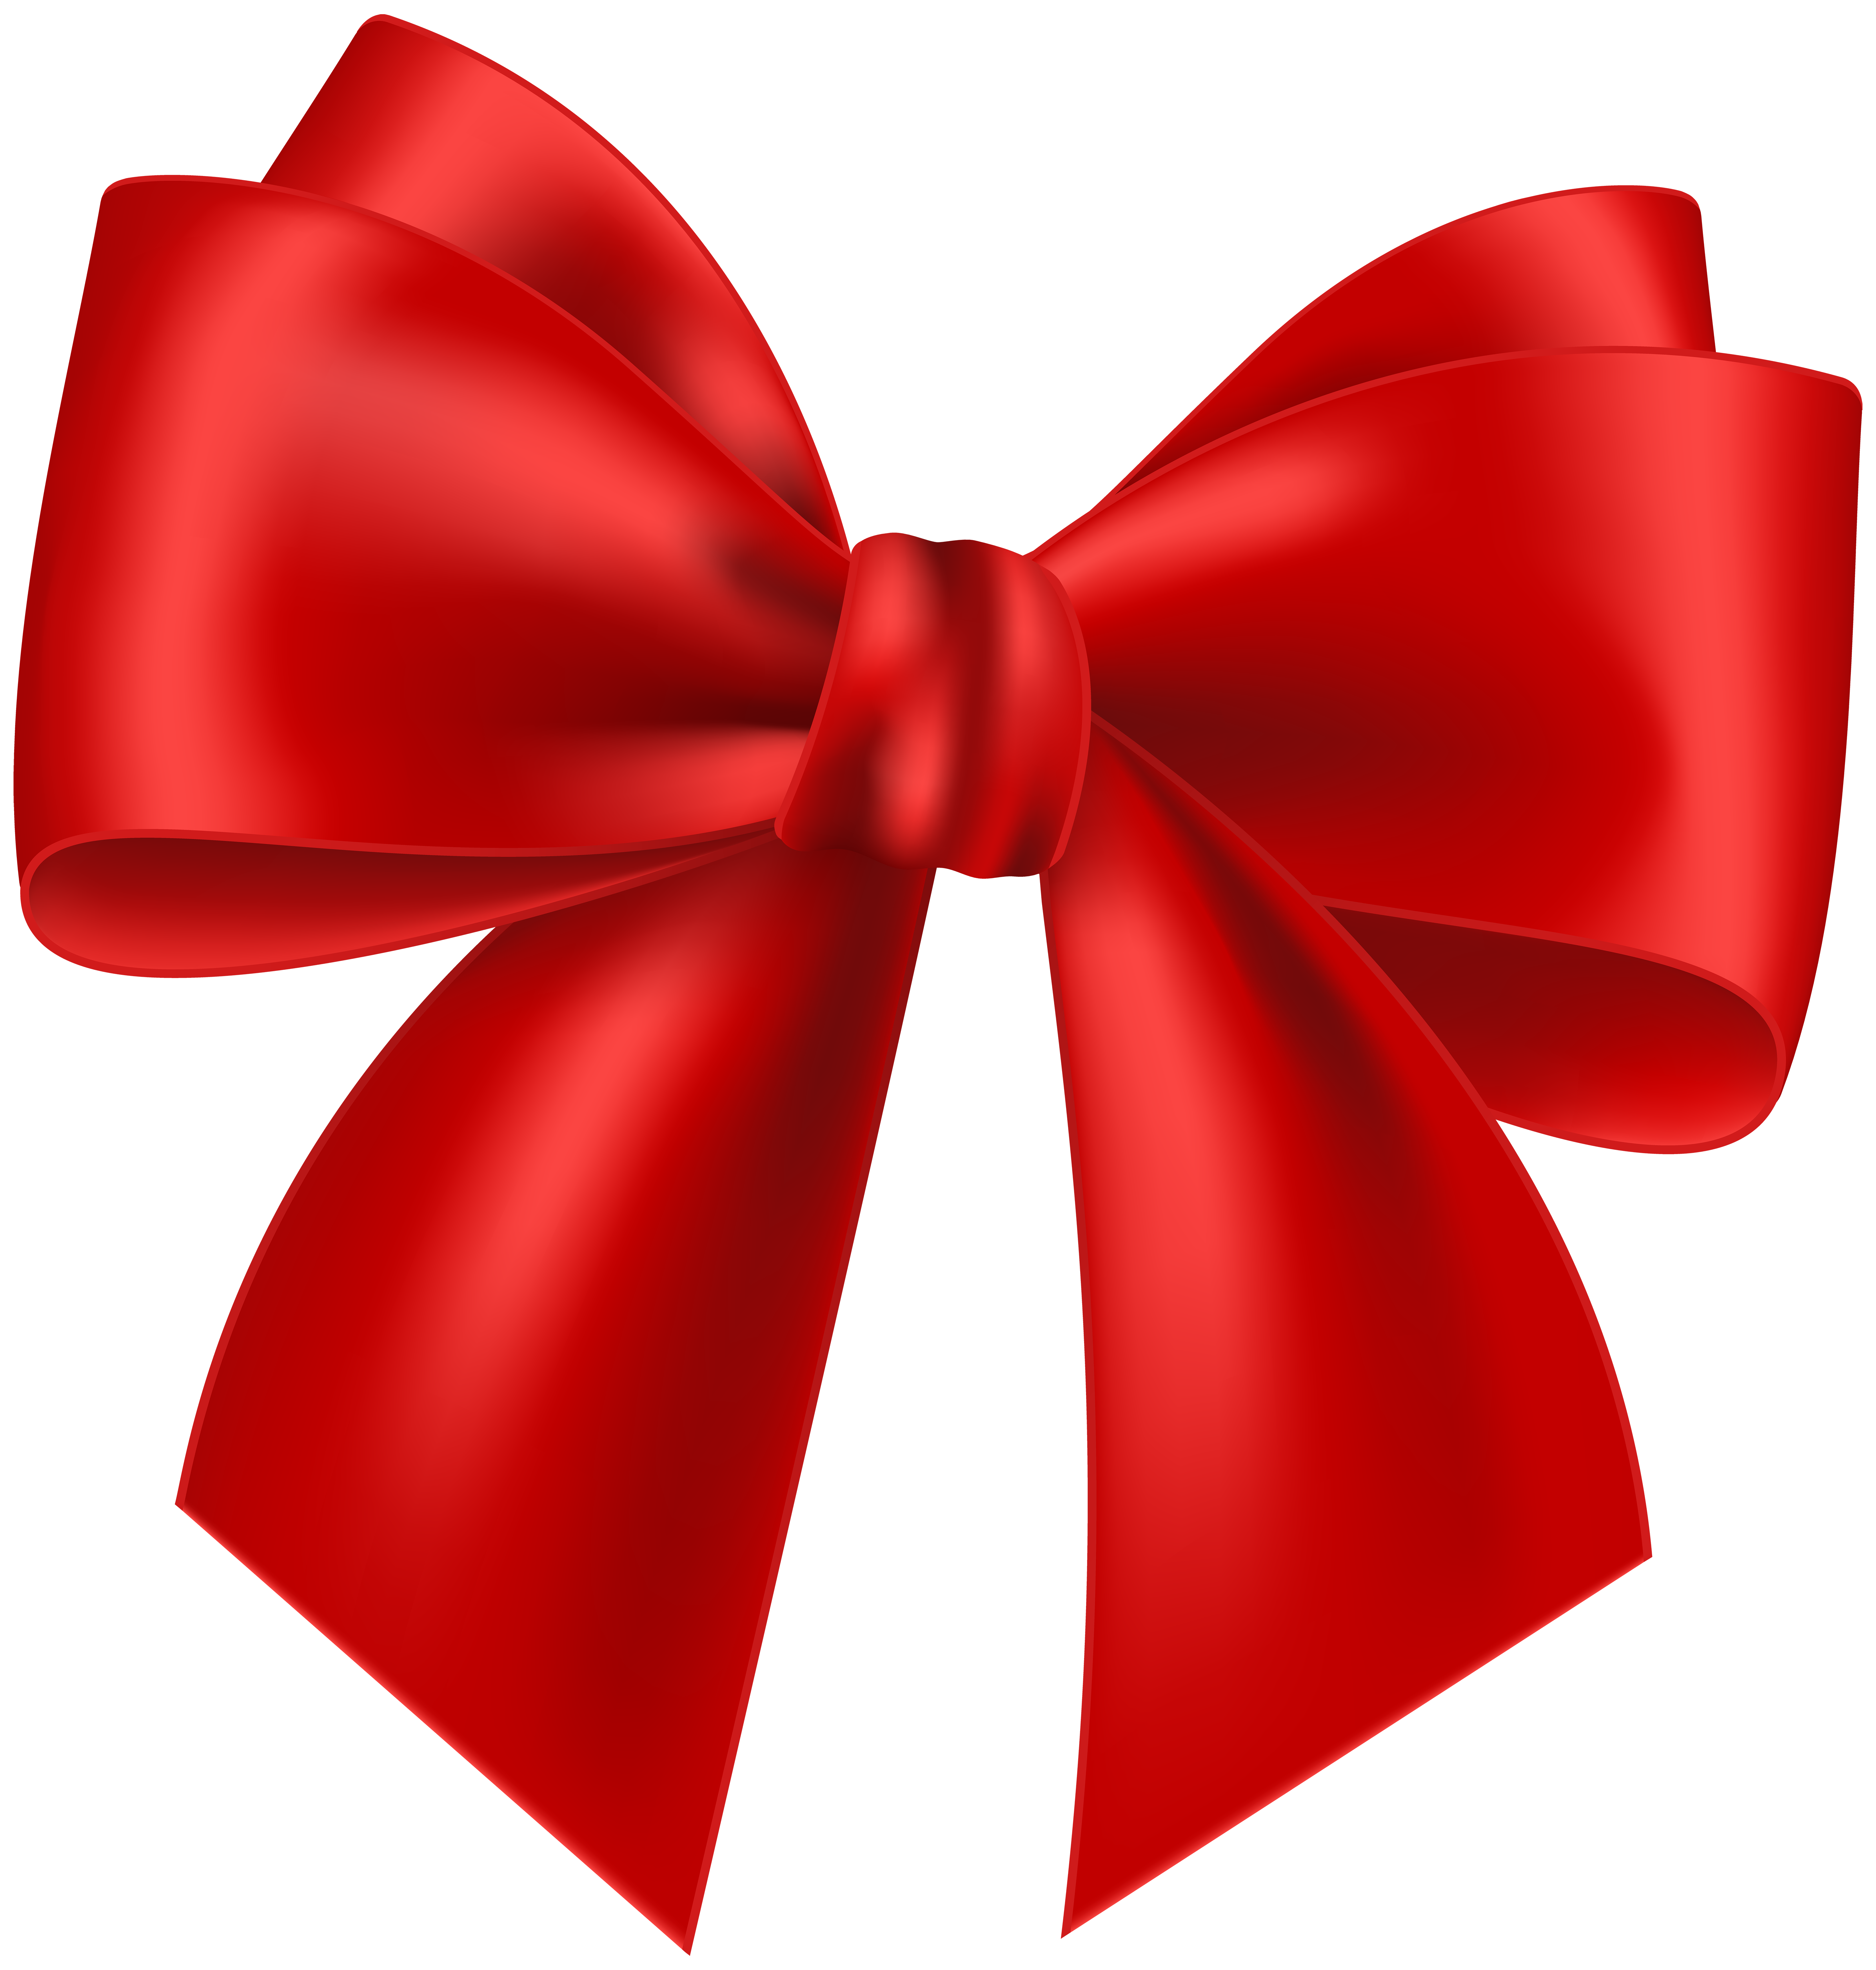 Red Bow Transparent Clip Art Image.